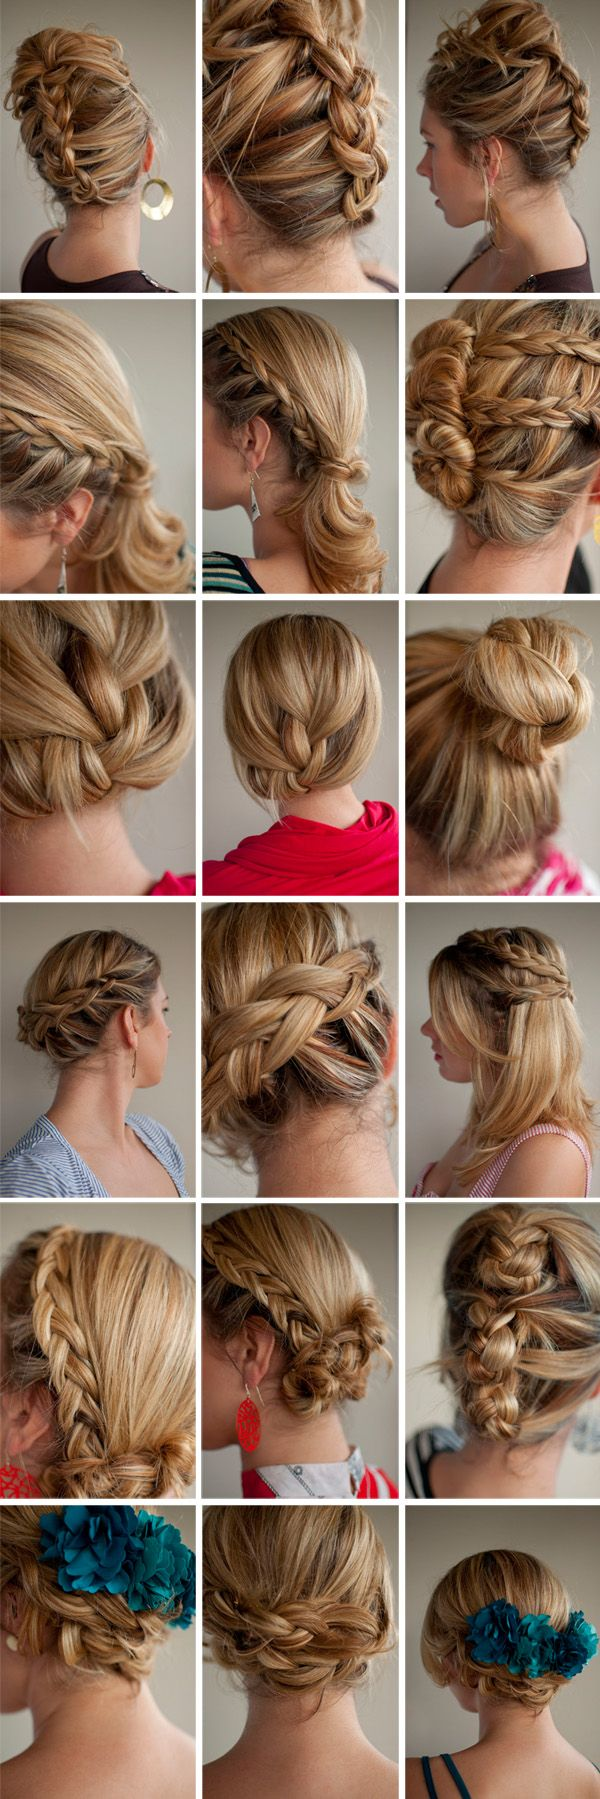 braids braids braids // via Hair Romance